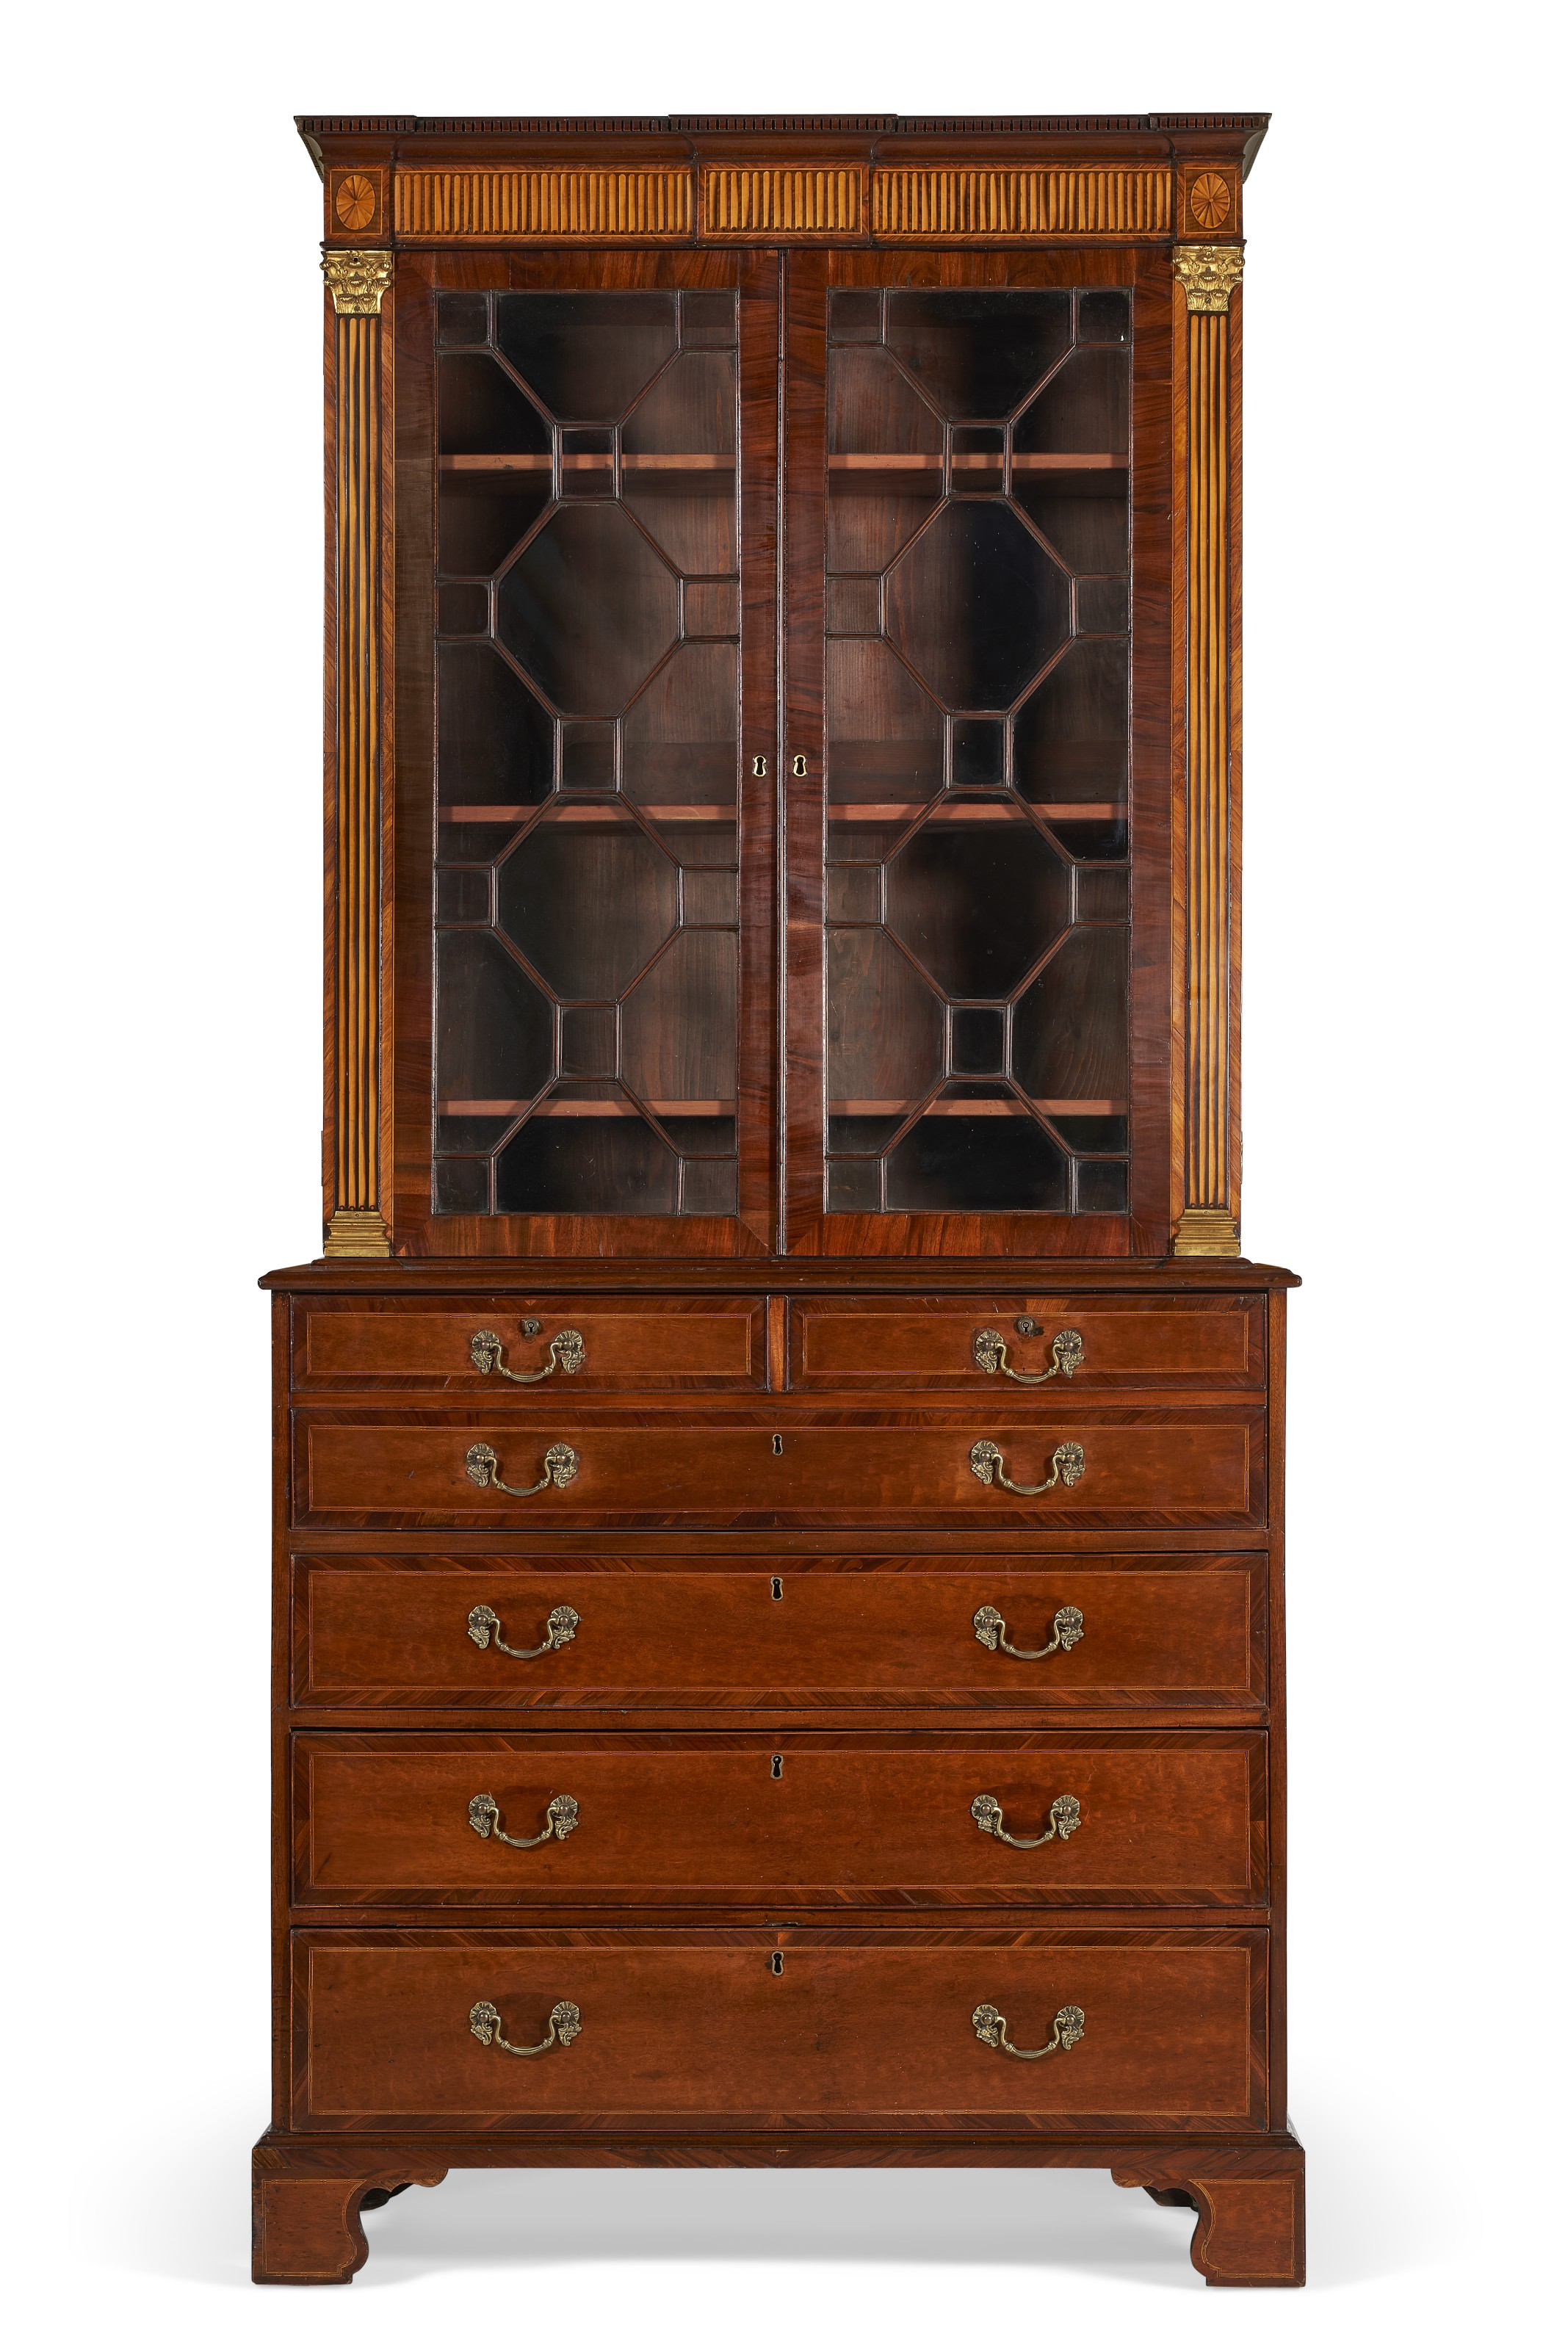 A George III ormolu-mounted and inlaid mahogany and tulipwood banded secretaire bookcase, in the manner of Ince & Mayhew, c. 1780. 89¾  in (228  cm) high, 43  in (109  cm) wide, 21½  in (54.5  cm) deep. Estimate $6,000-10,000. Offered in The Collector English & European Furniture, Ceramics, Silver & Works of Art on 5-19 October 2021 at Christie's Online